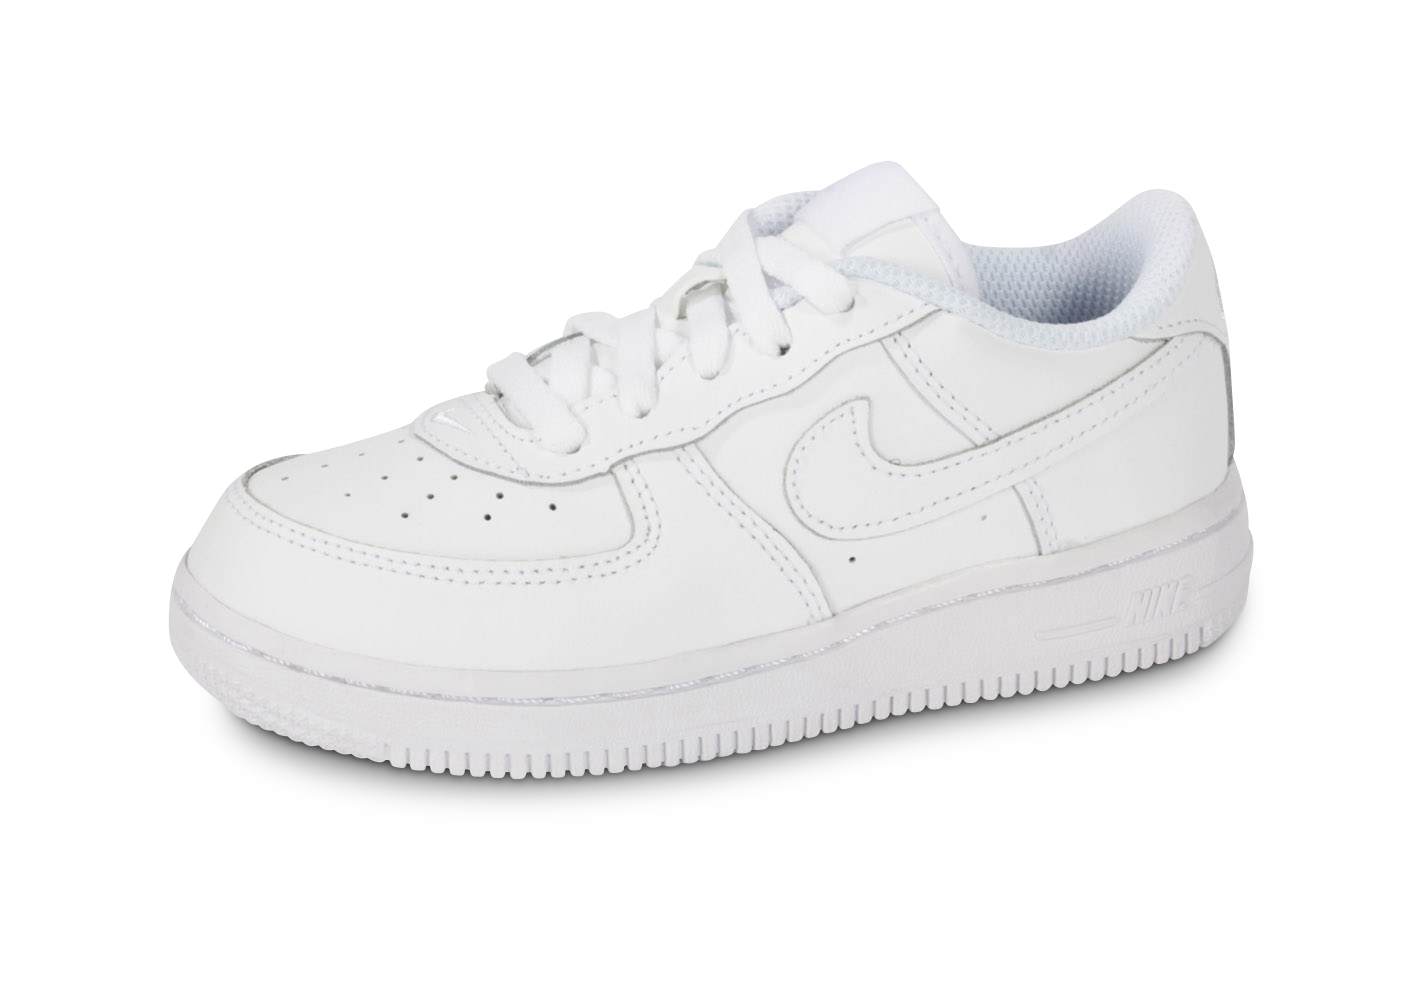 Baskets nike air force 1 bébé blanche